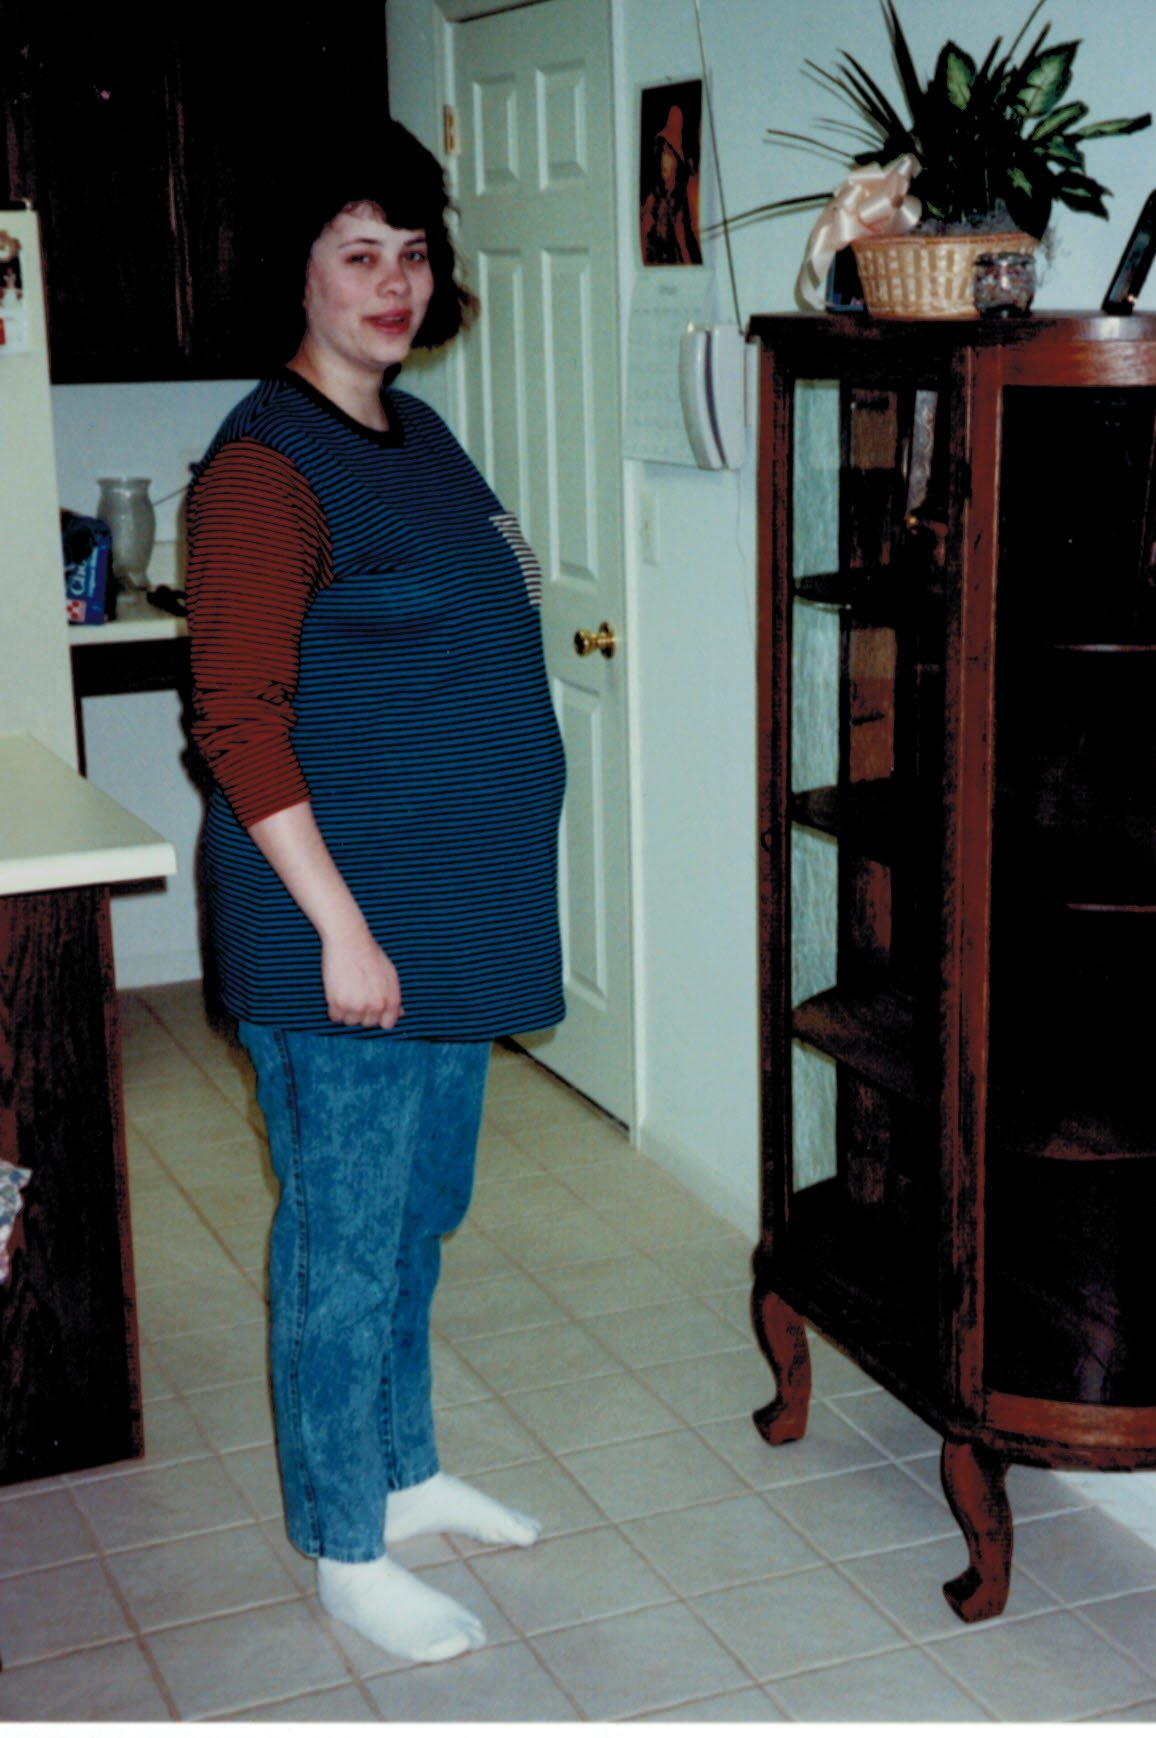 Lisa Lederer first pregnancy